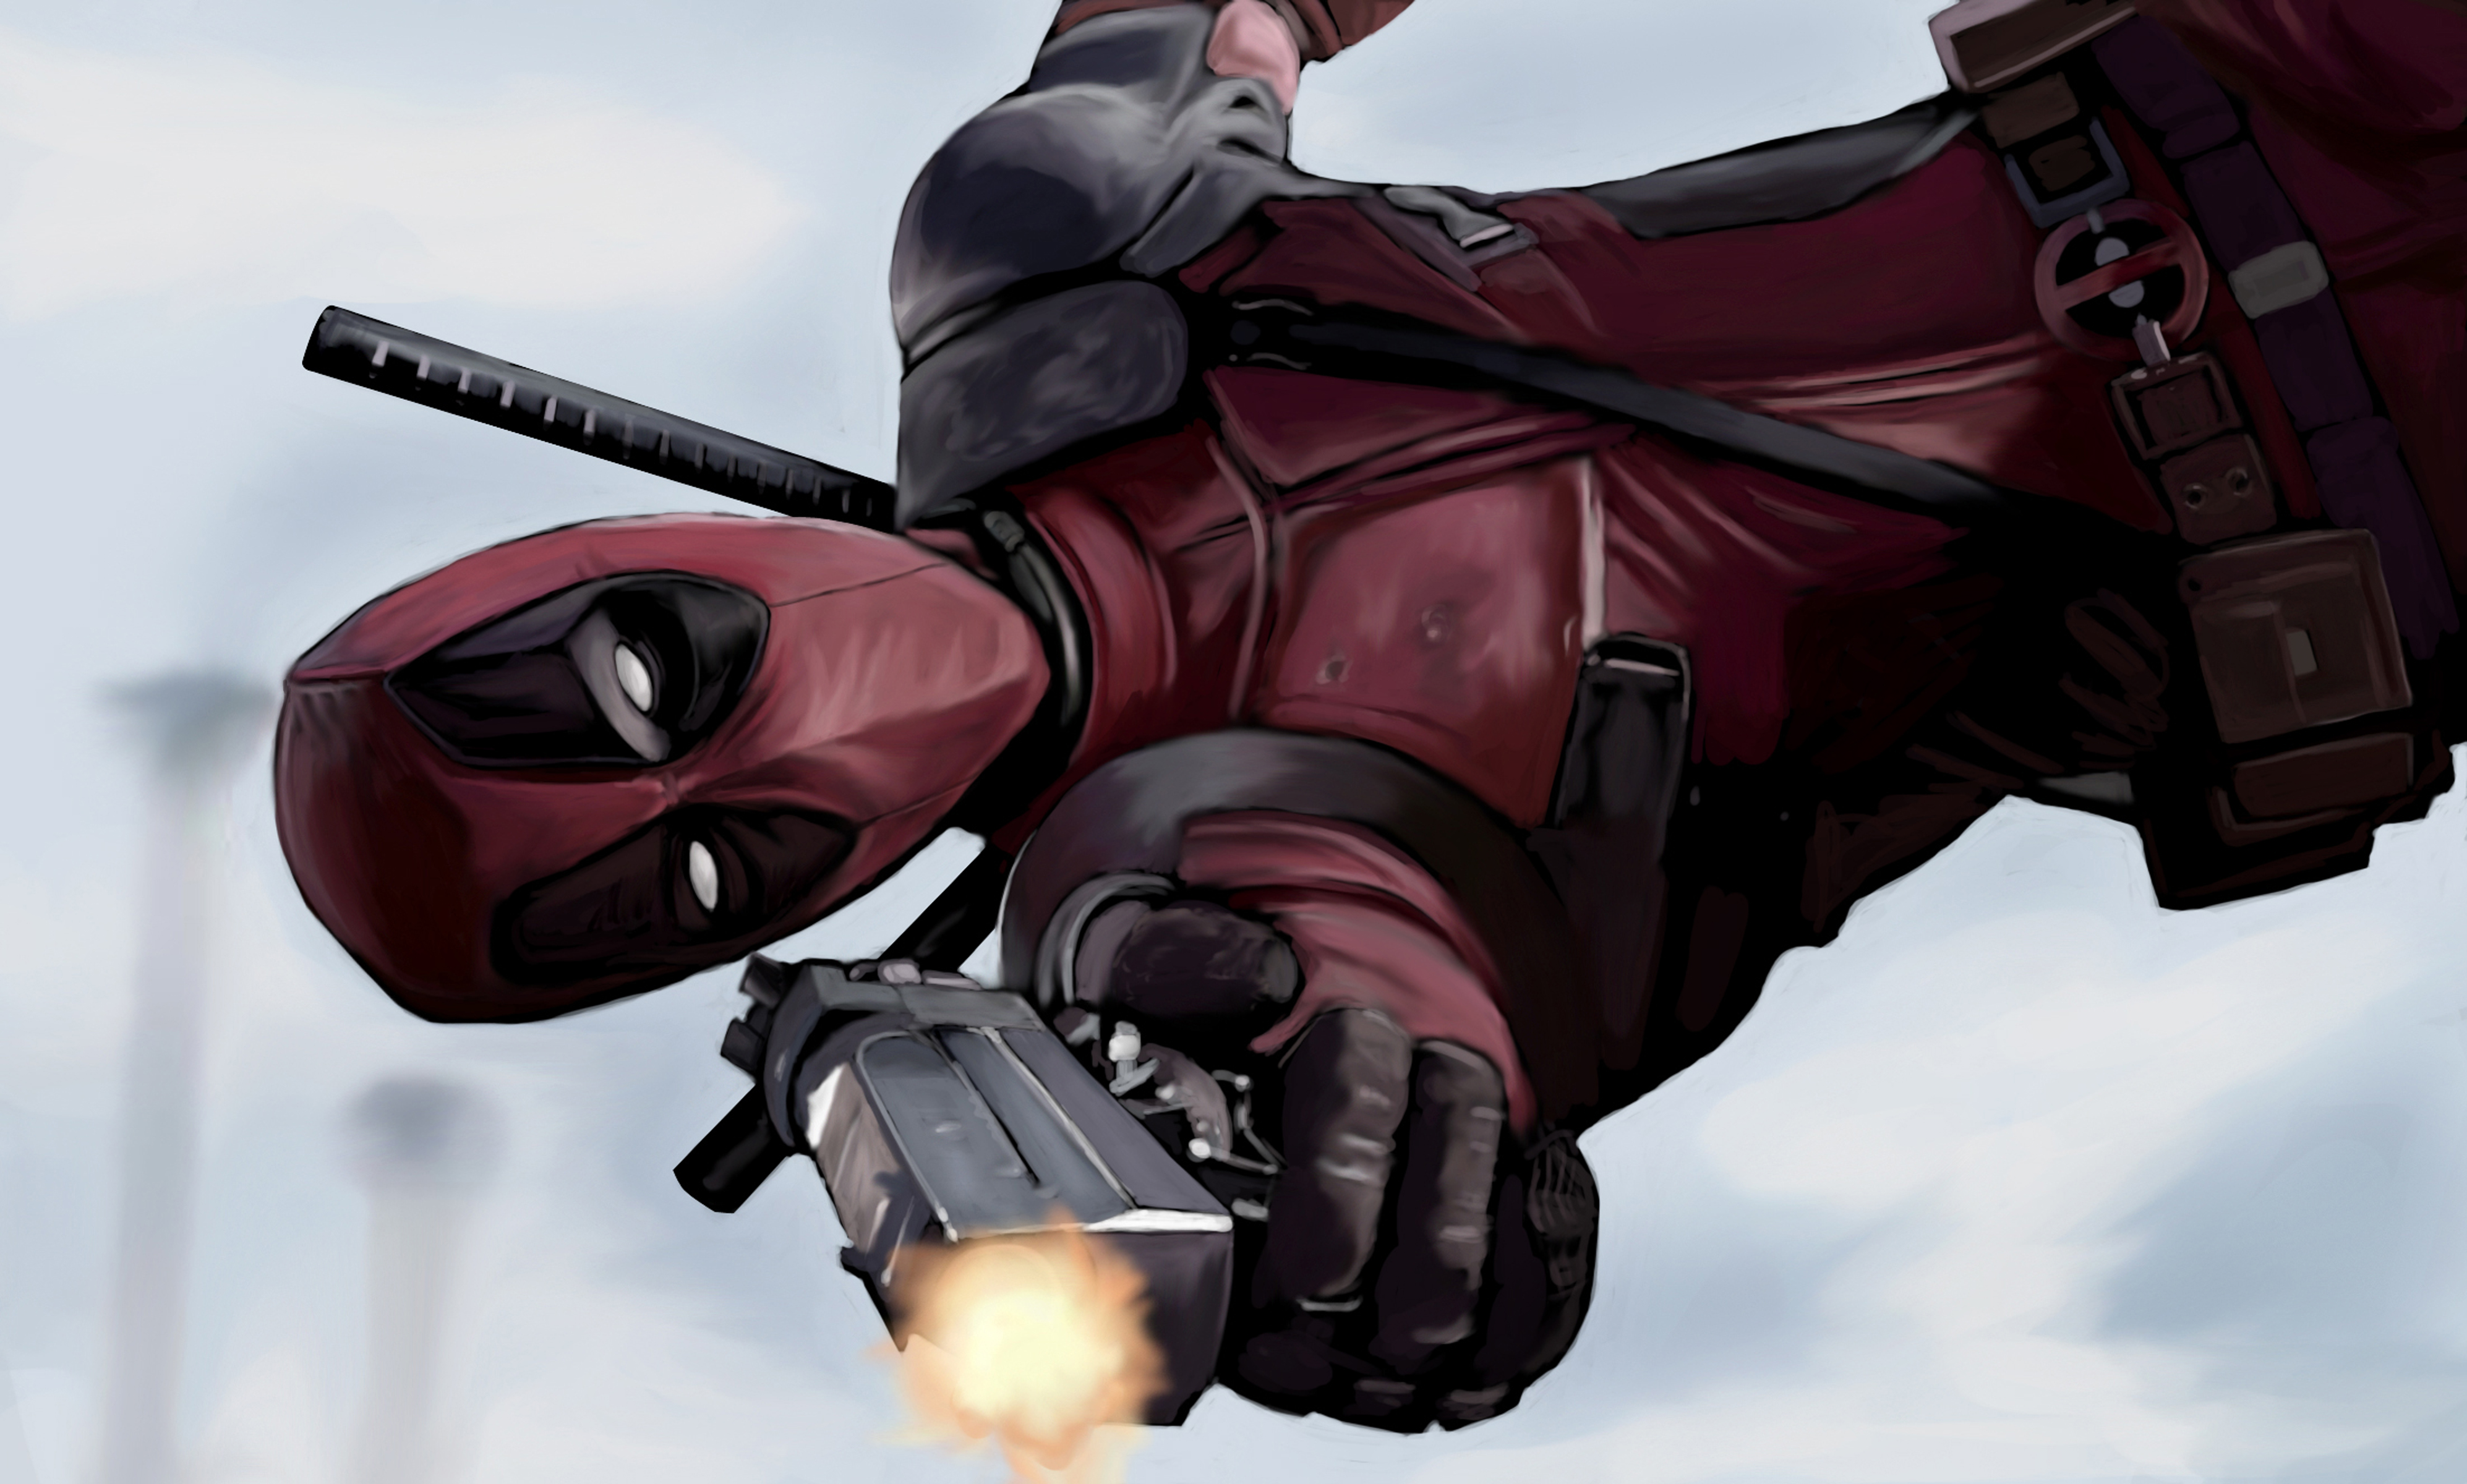 Deadpool Artwork 4k Hd Superheroes 4k Wallpapers Images Backgrounds Photos And Pictures